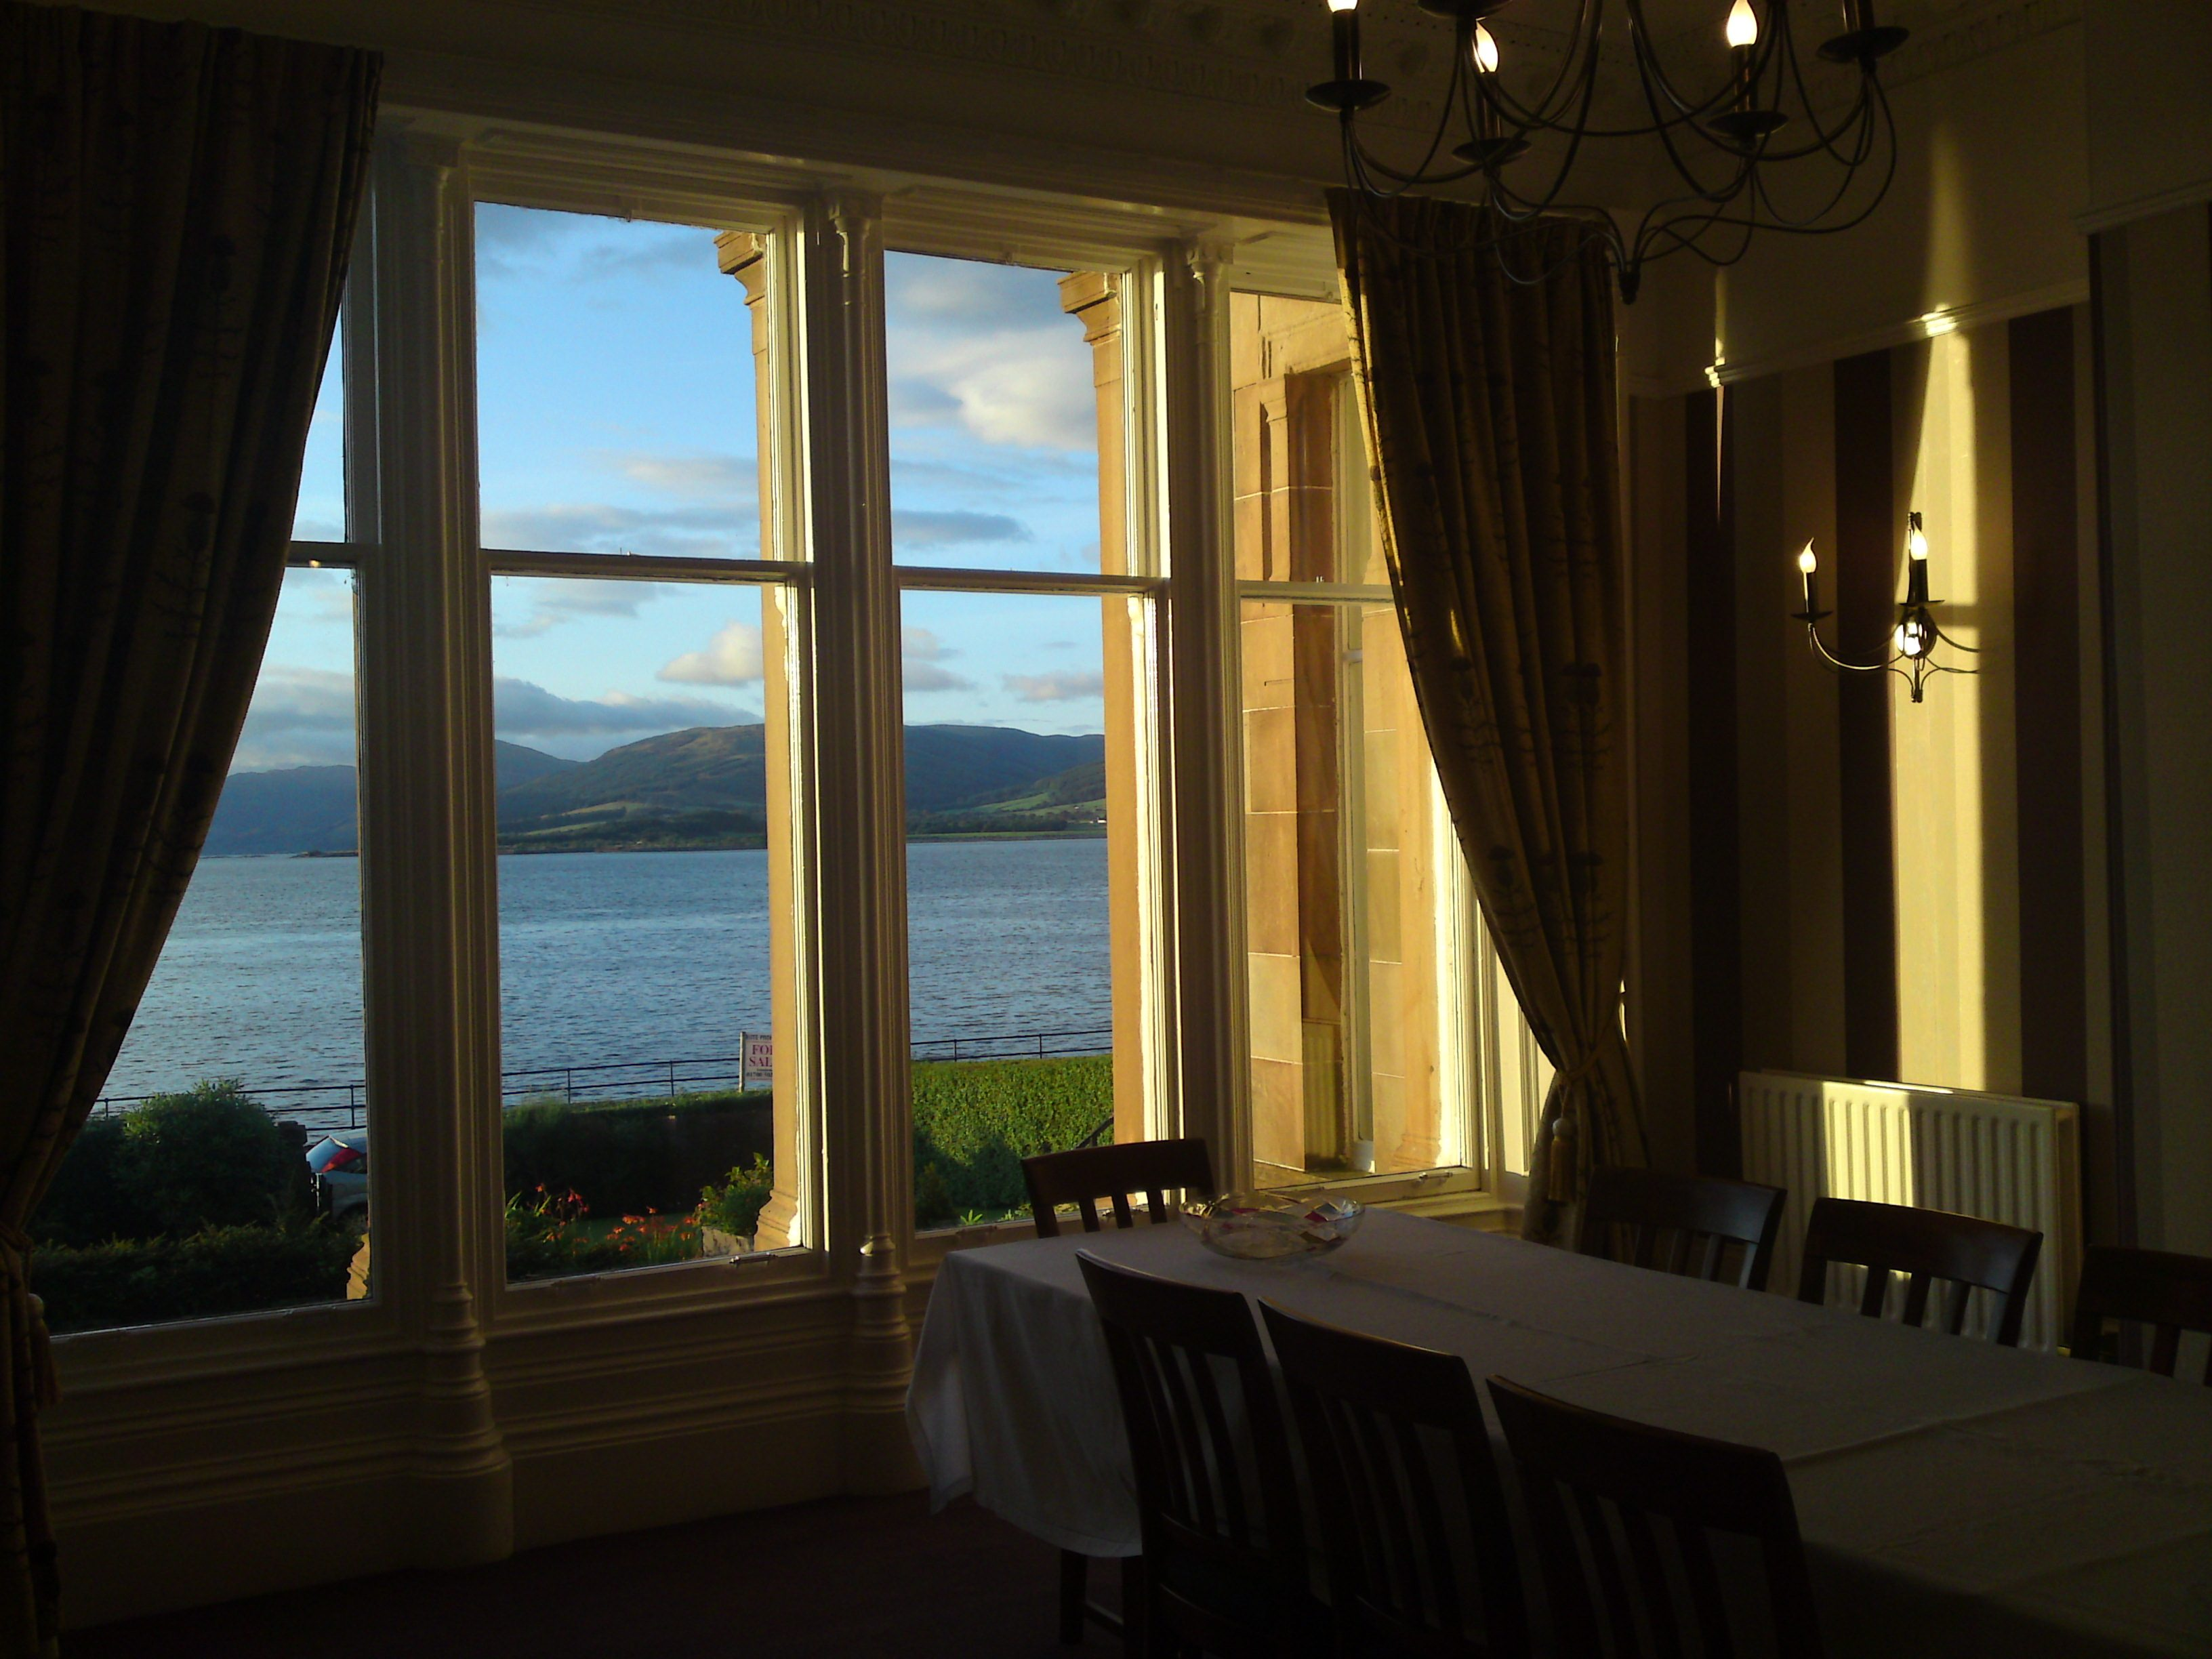 Bed & Breakfast in Rothesay